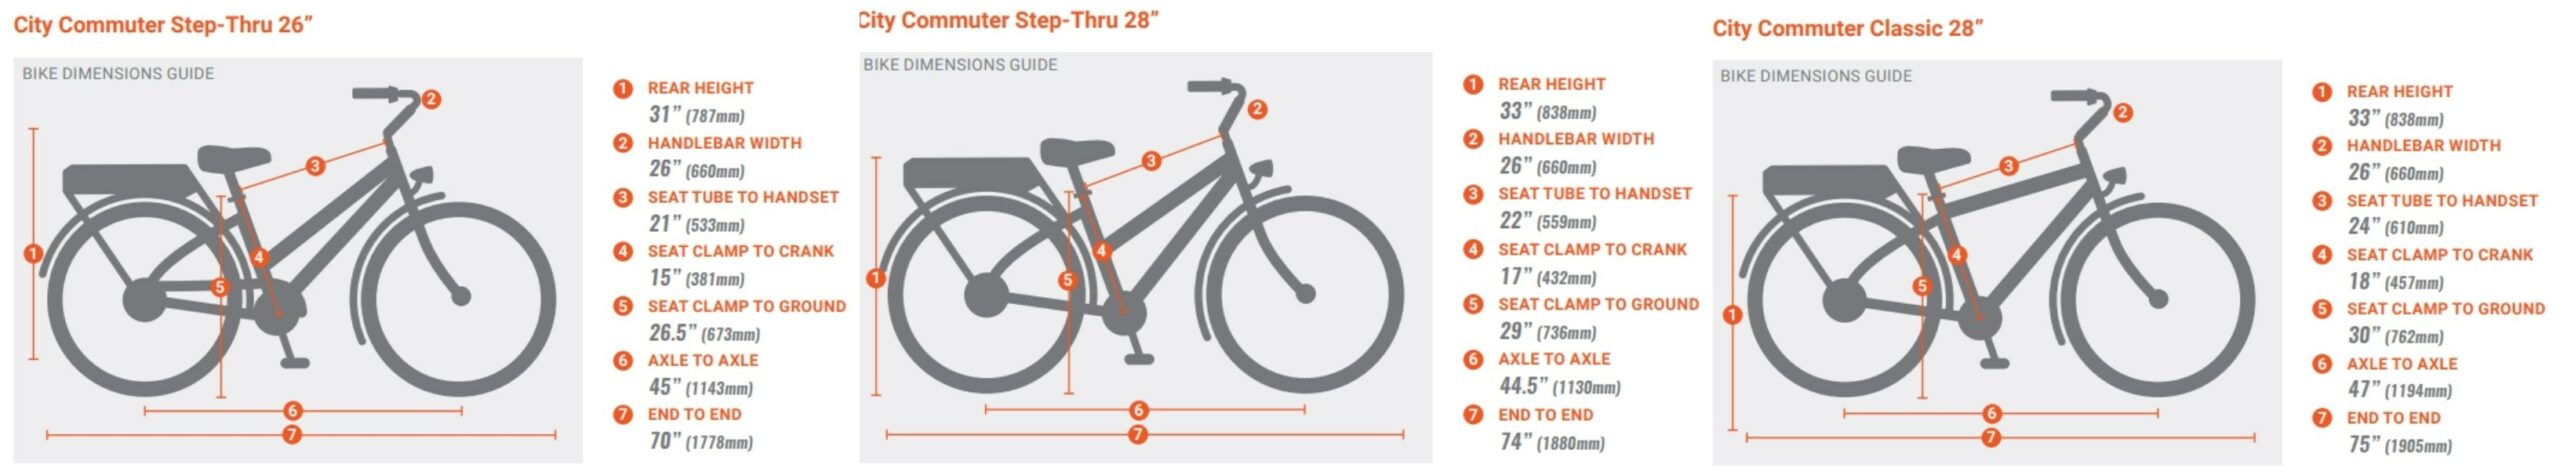 Pedego City Commuter Sizes